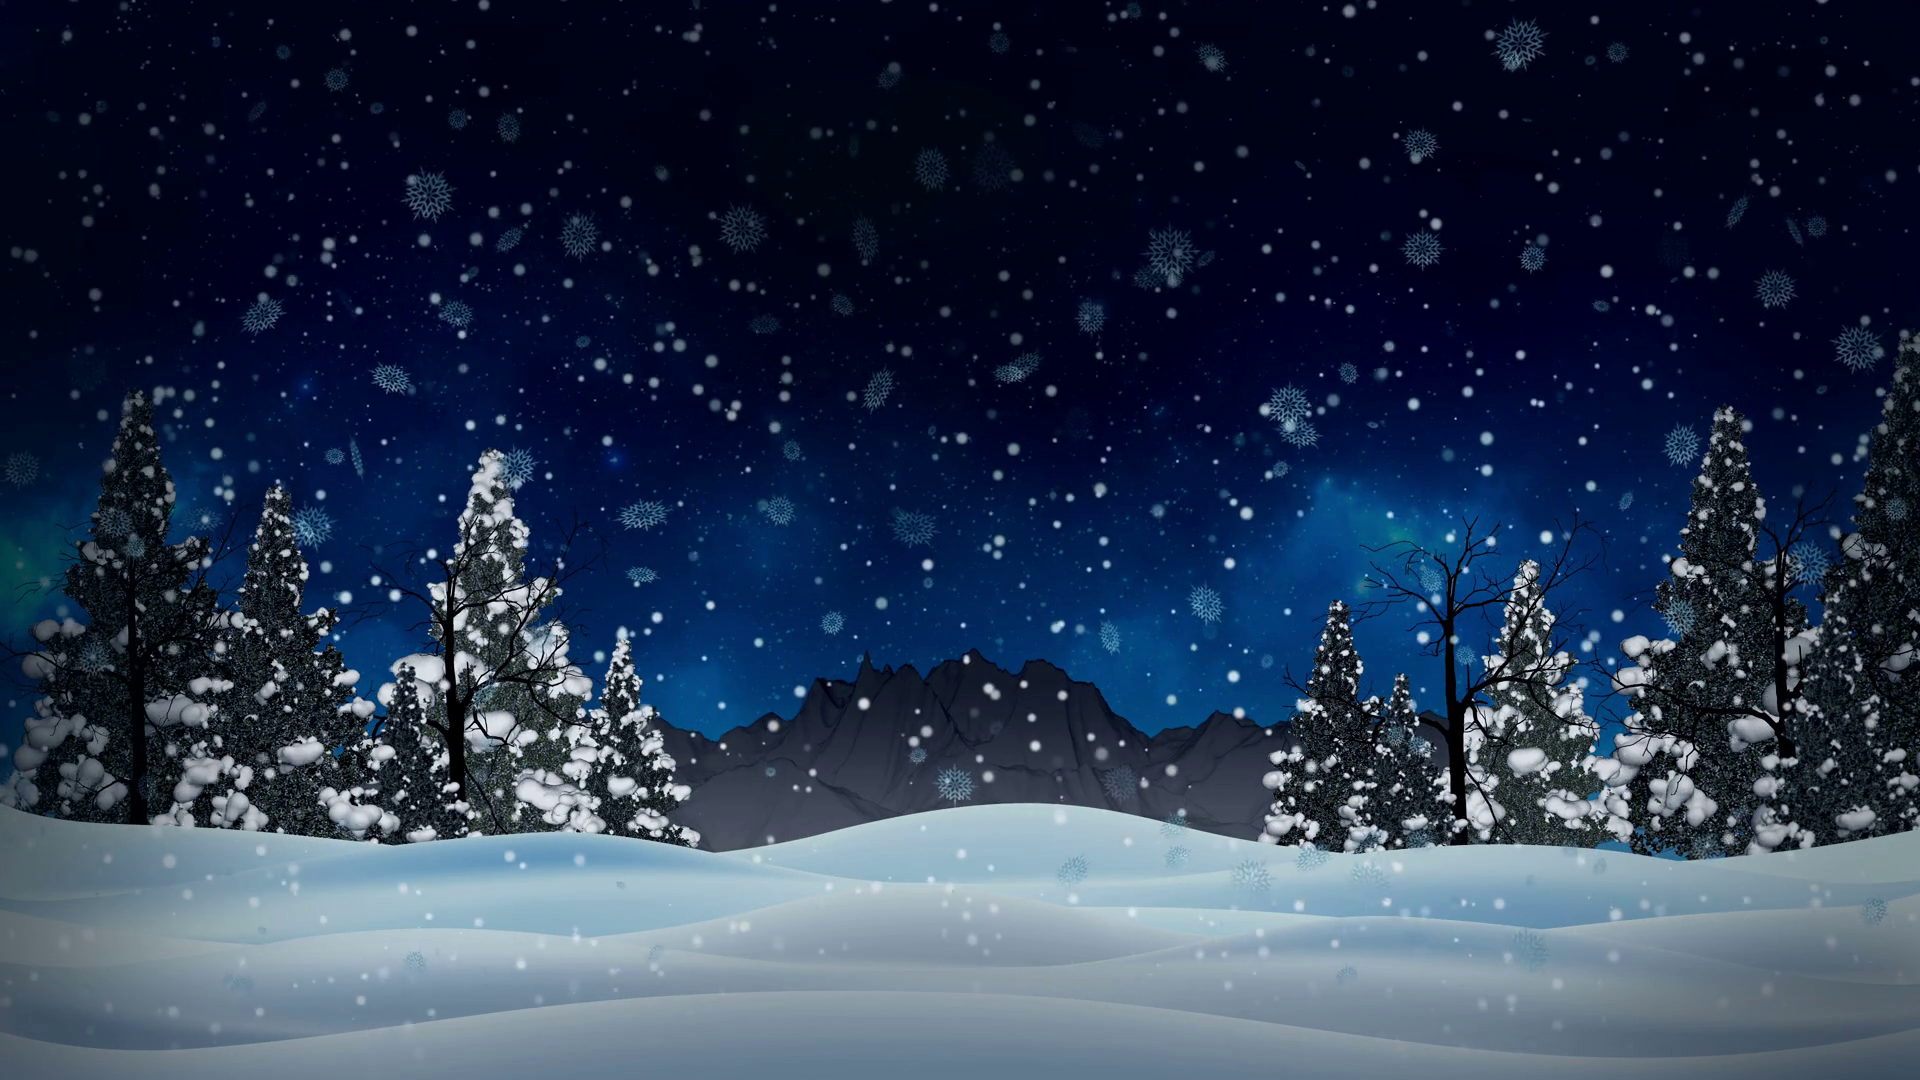 Snowy Christmas Backgrounds Png - Seamless Animation White Snowy And Snow #377672 - PNG Images - PNGio